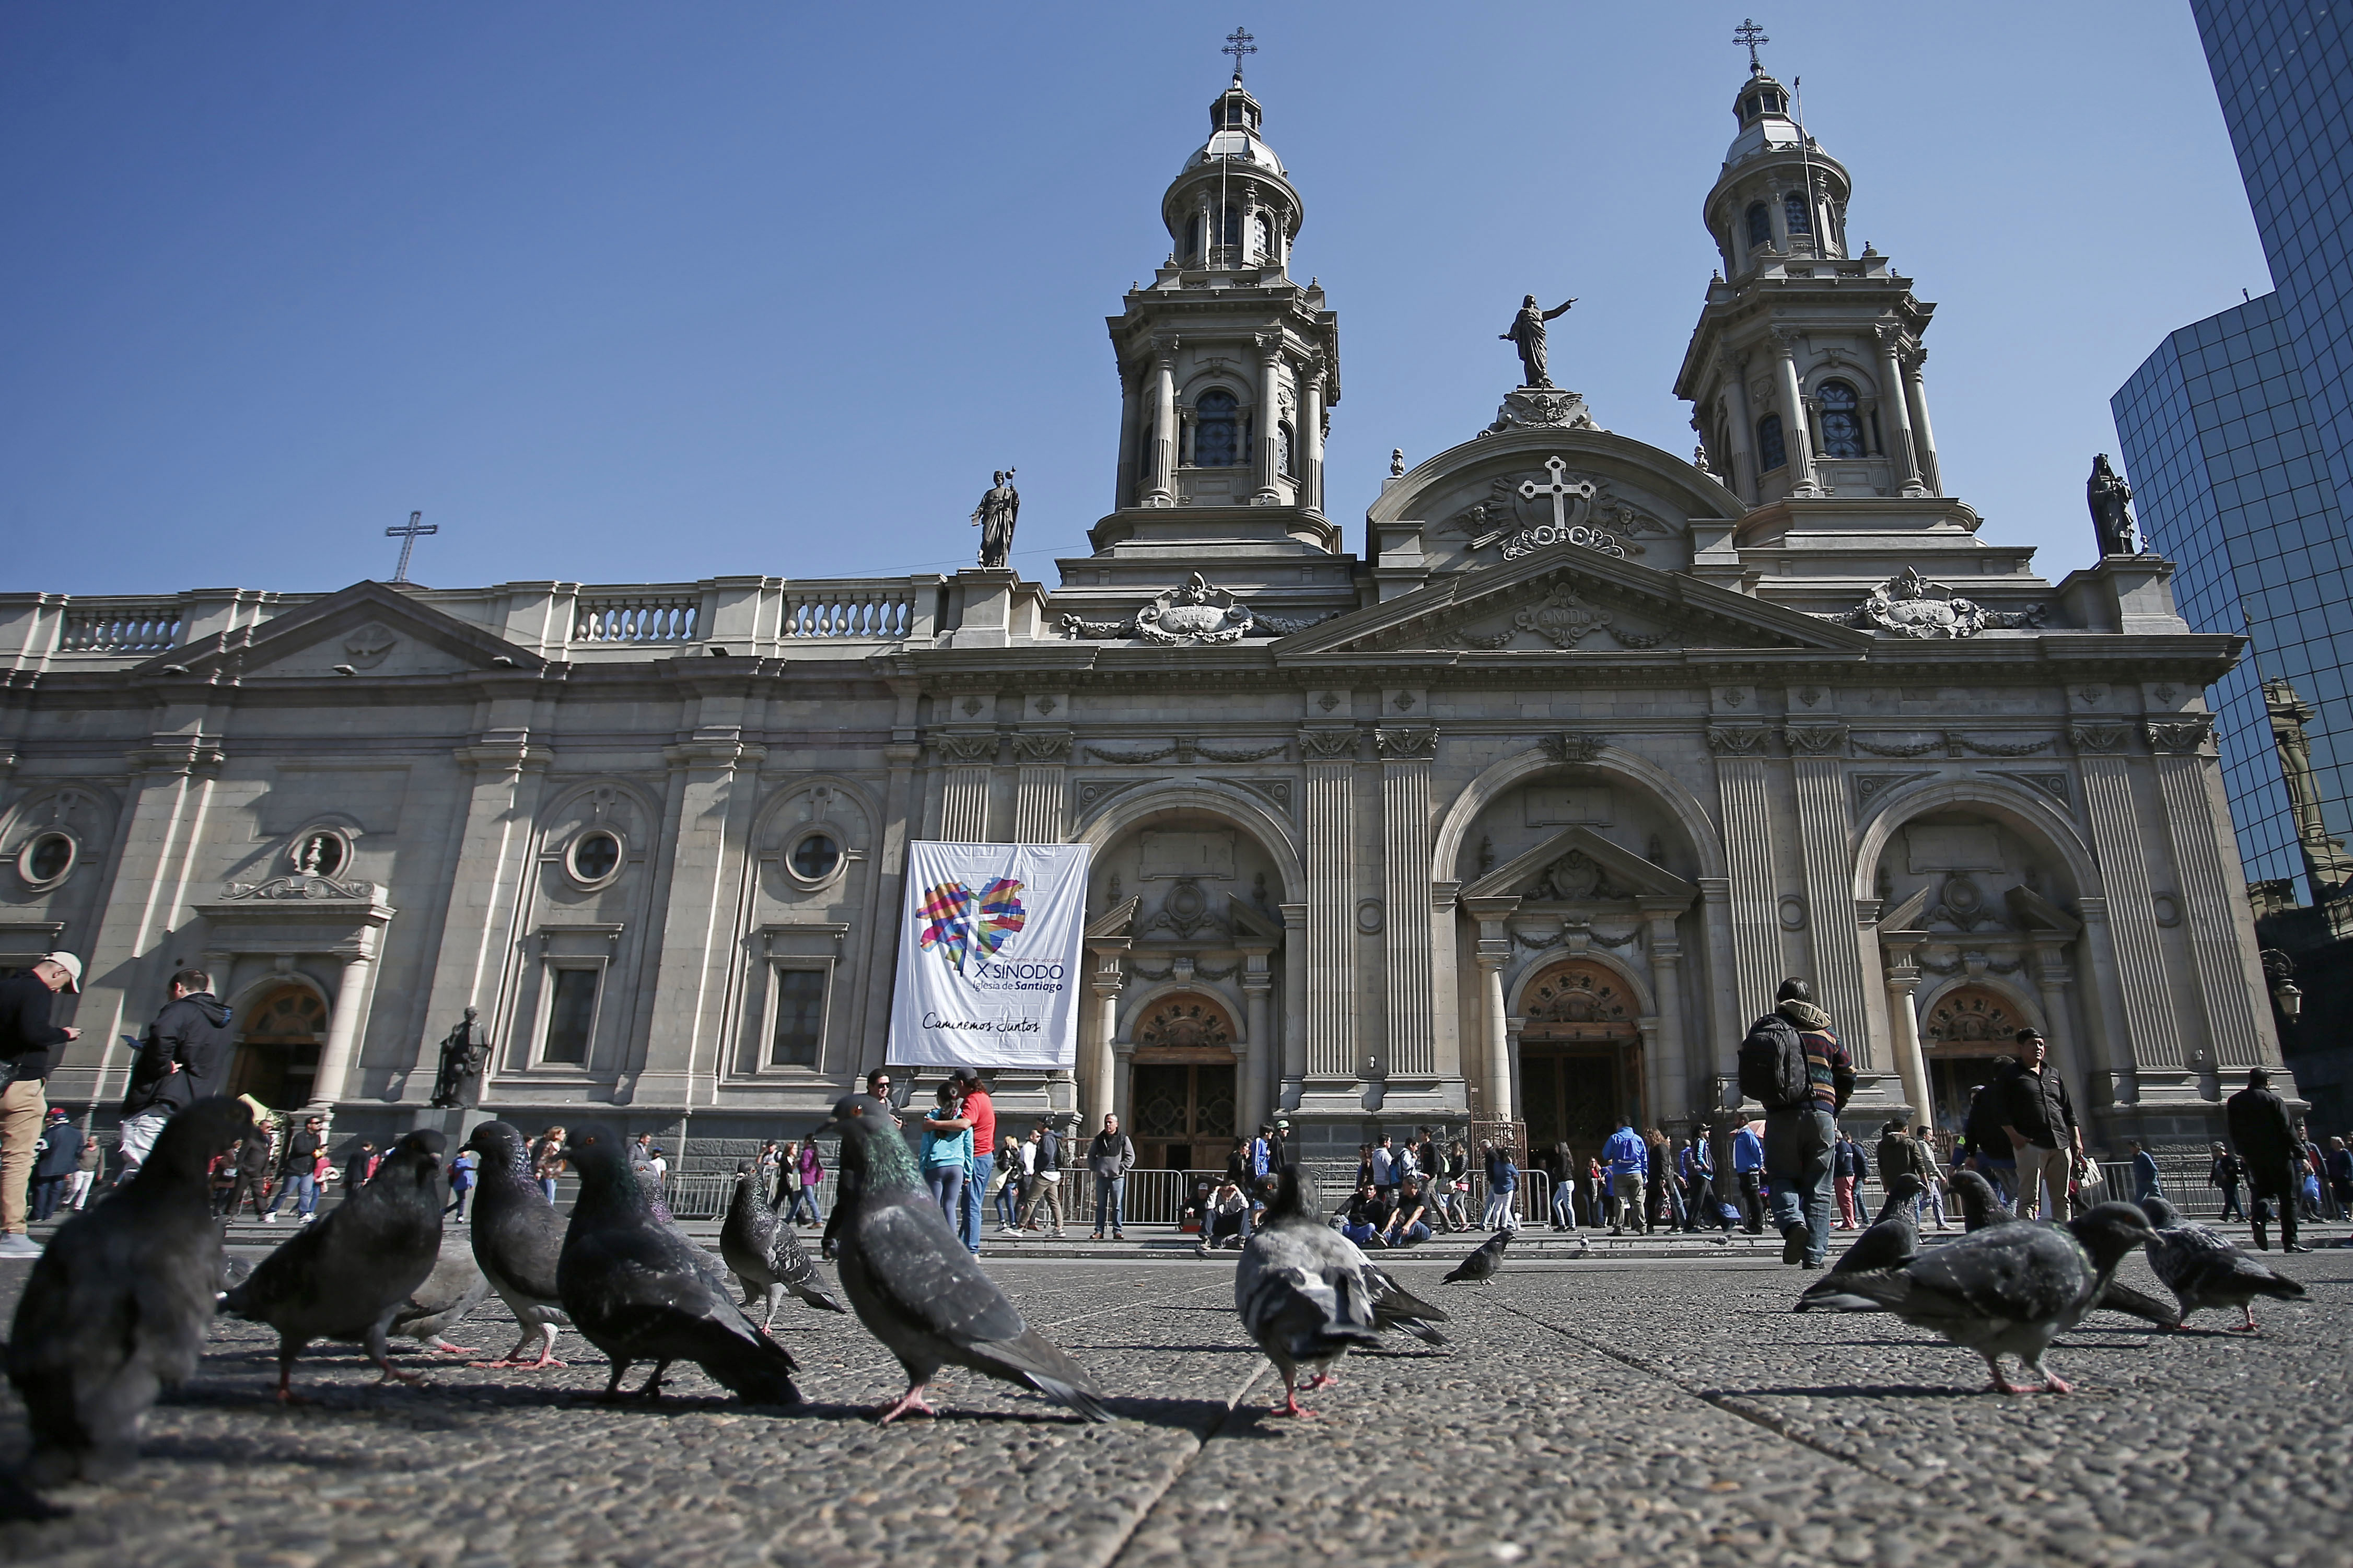 FILE - In this May 18, 2018 file photo, pigeons are fed in front of the Santiago Cathedral, in Santiago, Chile. Pope Francis' high-stakes sex abuse prevention summit is meant to call attention to the crisis as a global problem that requires a global response. Francis discovered first-hand just how pervasive clerical sex abuse is — and how effectively it has been covered up by the Catholic hierarchy — when in January 2018 he branded as